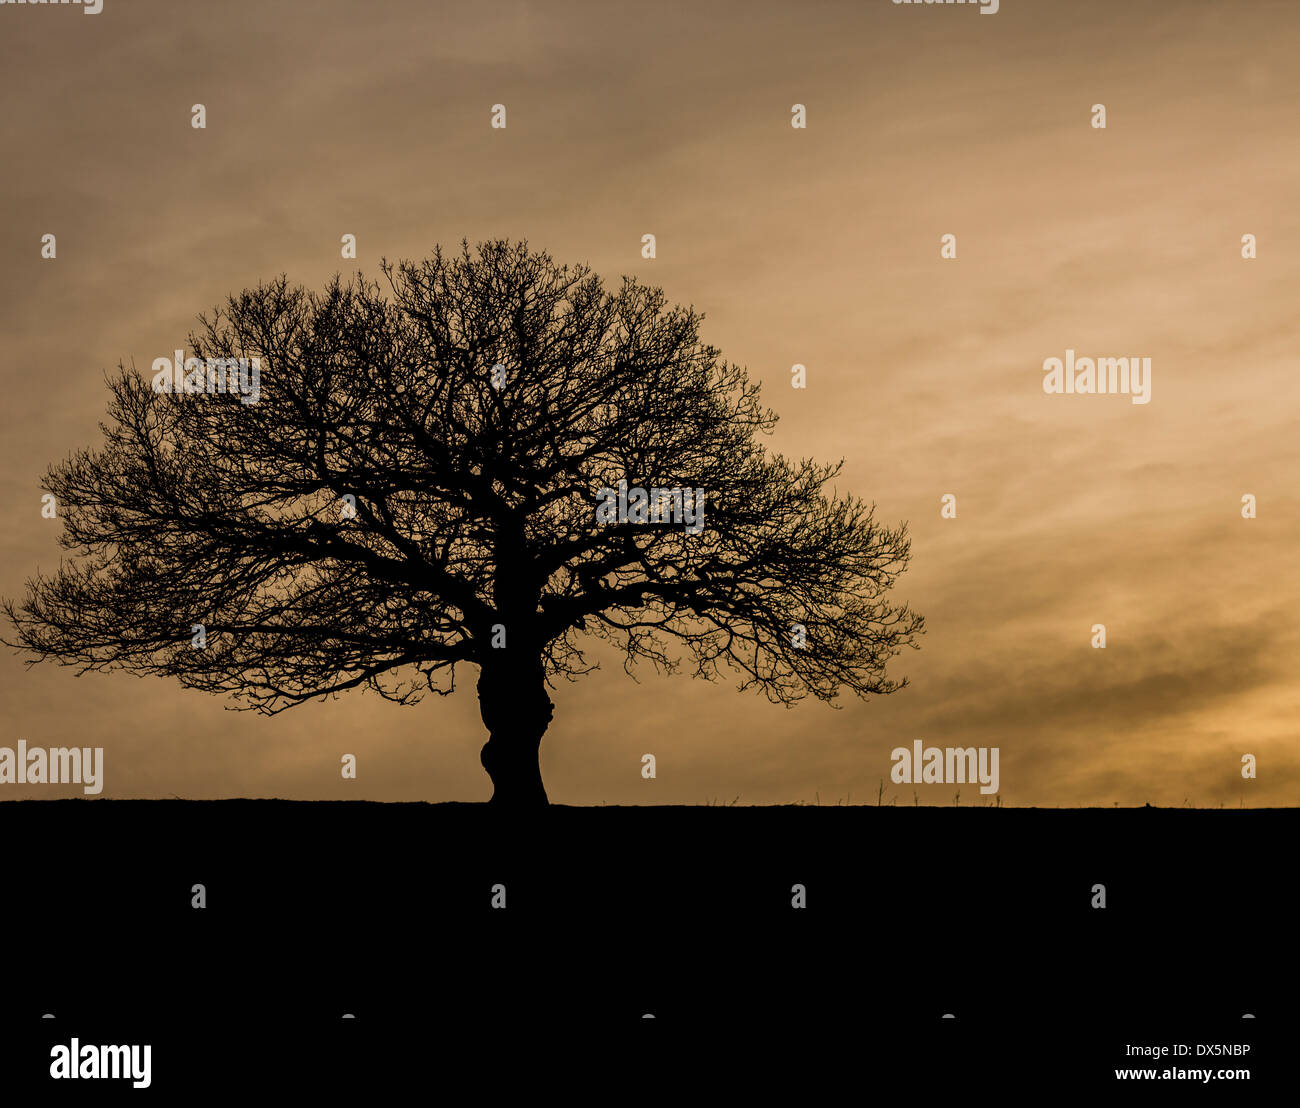 A silhouette of a bare oak tree at dusk on a hill in Yorkshire UK - Stock Image